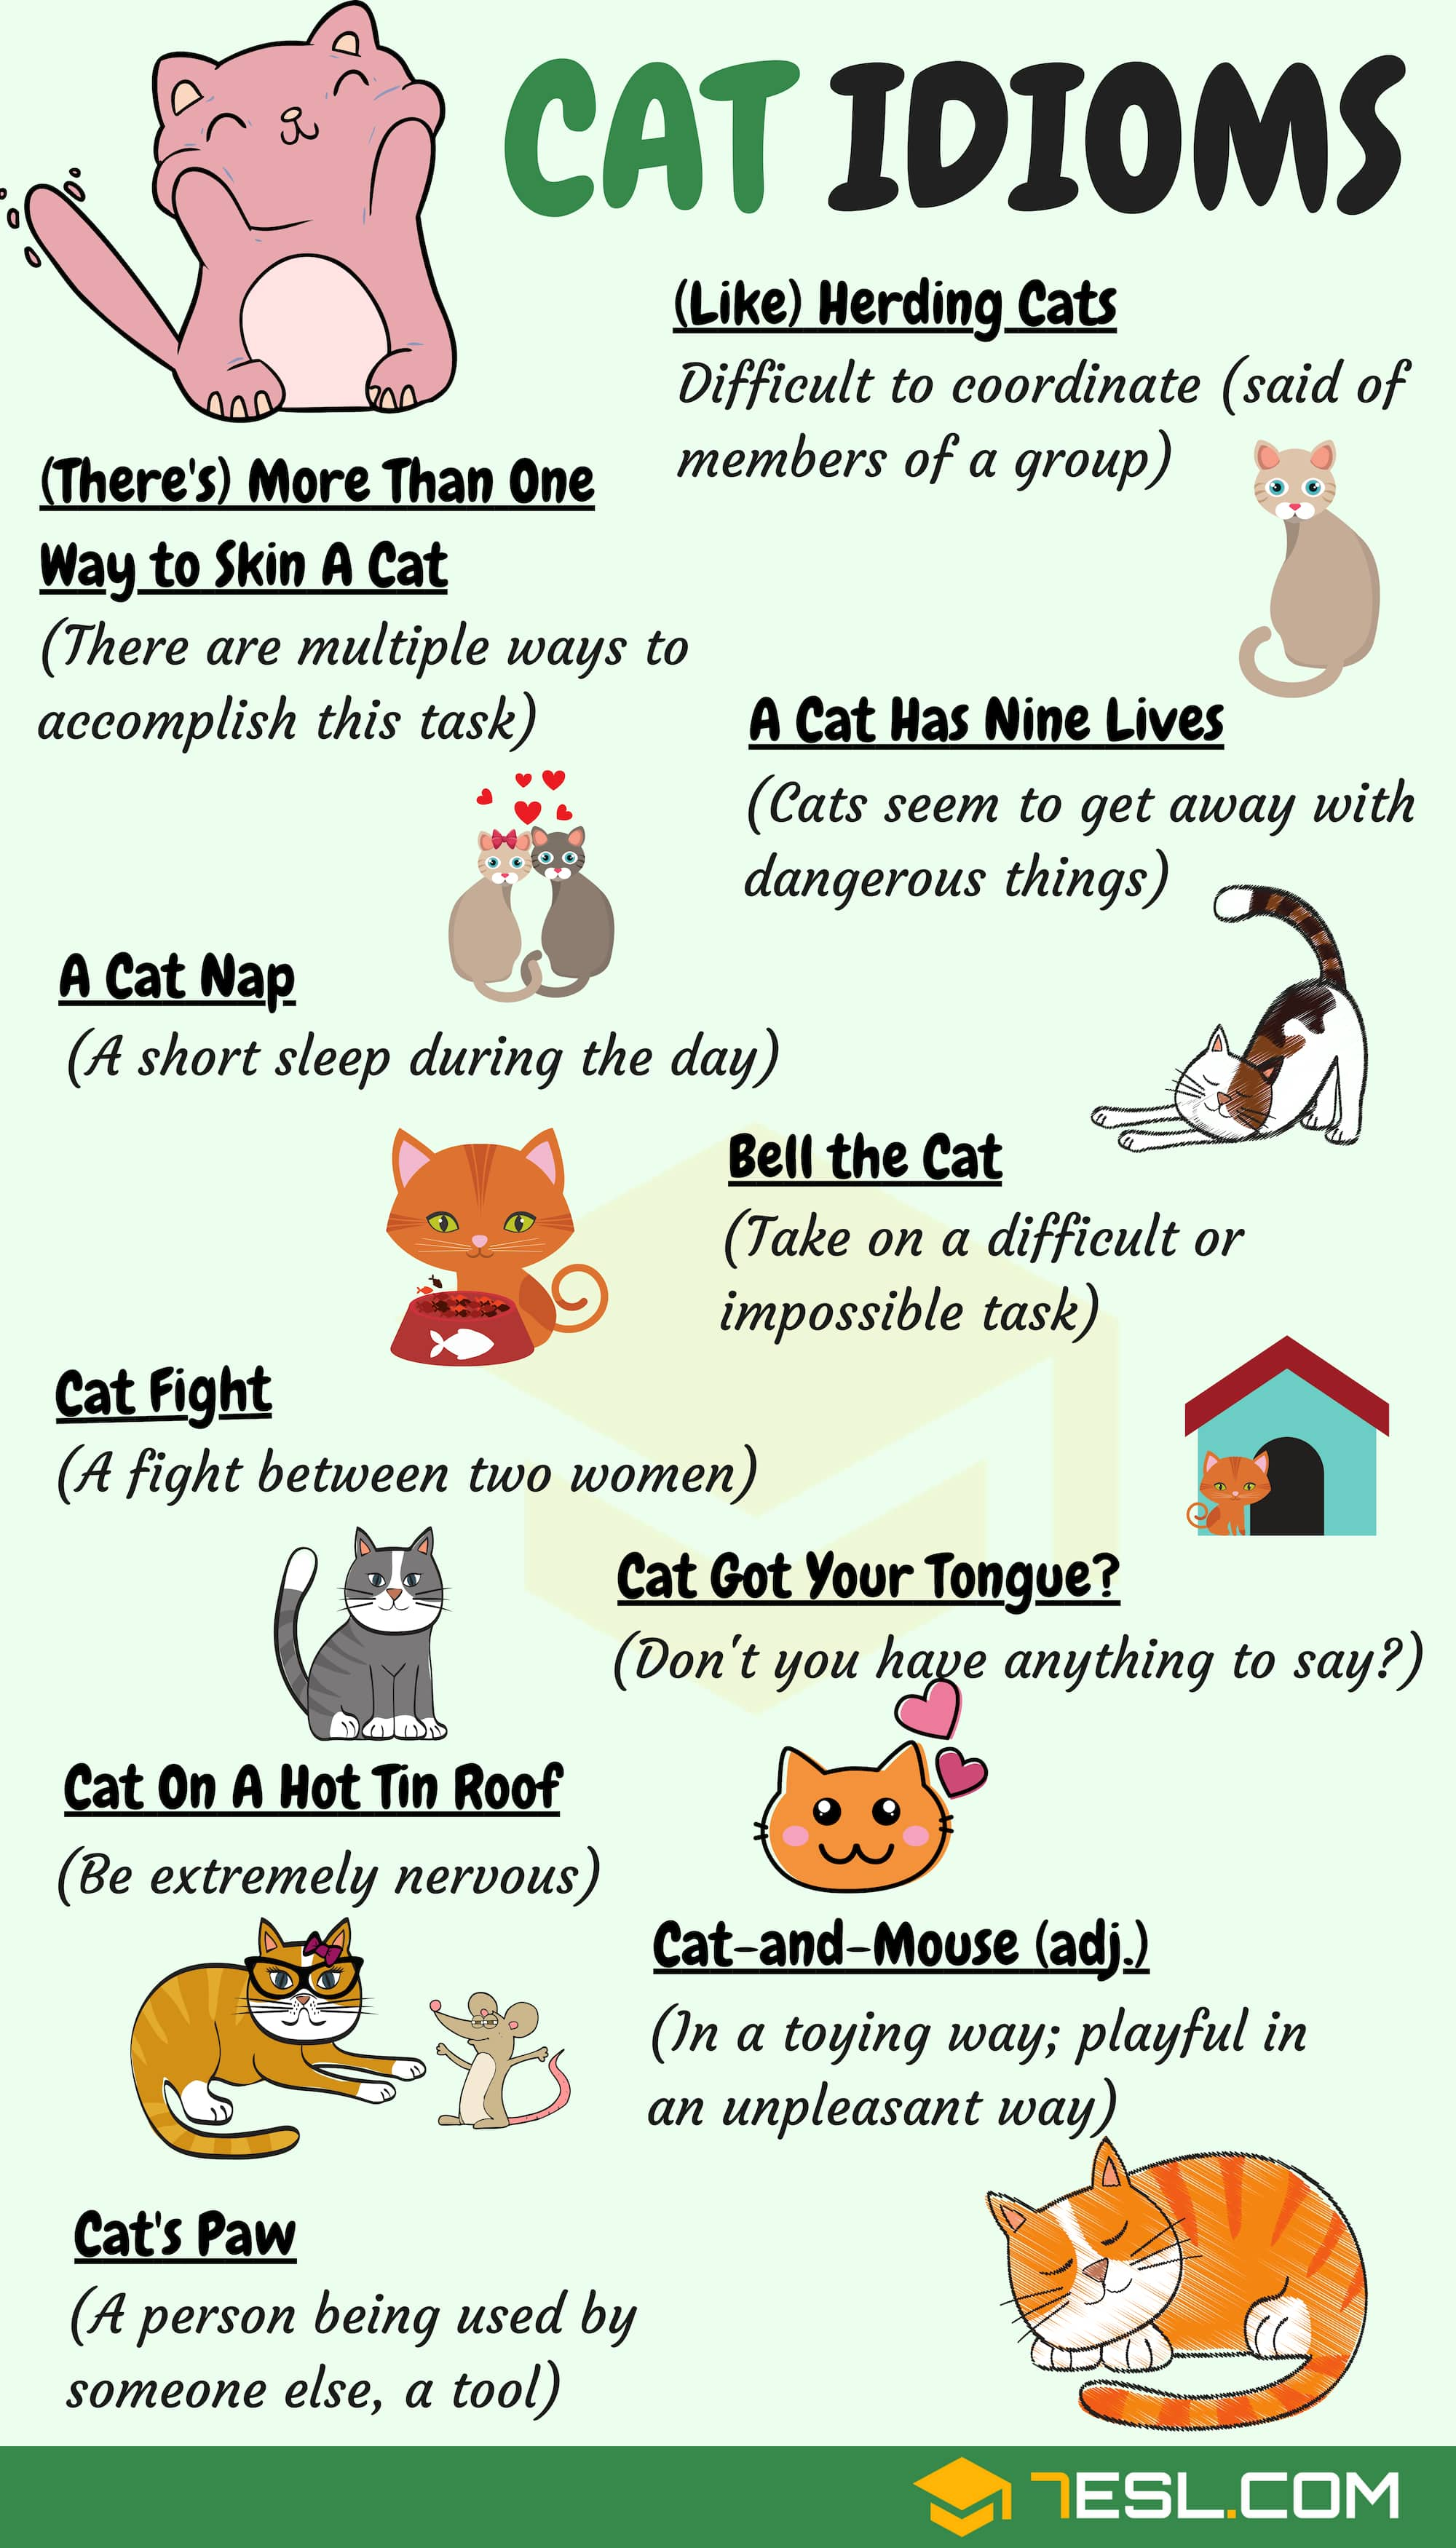 Cat Idioms 30 Useful Cat Idioms Sayings In English 7 E S L